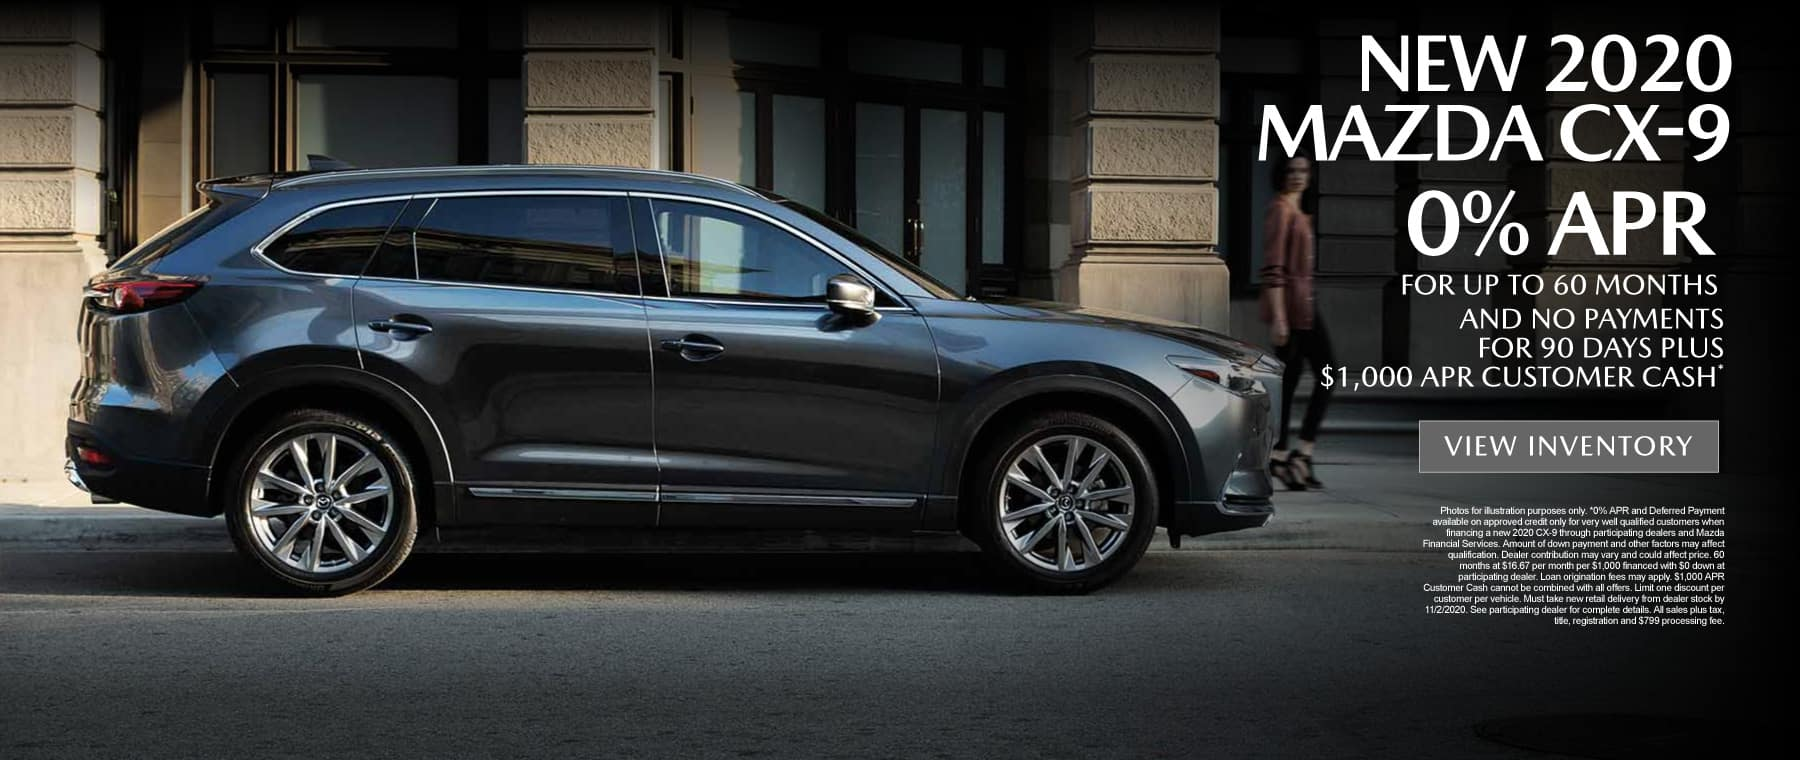 CX-9 0% APR for up to 60 months - click here to view inventory